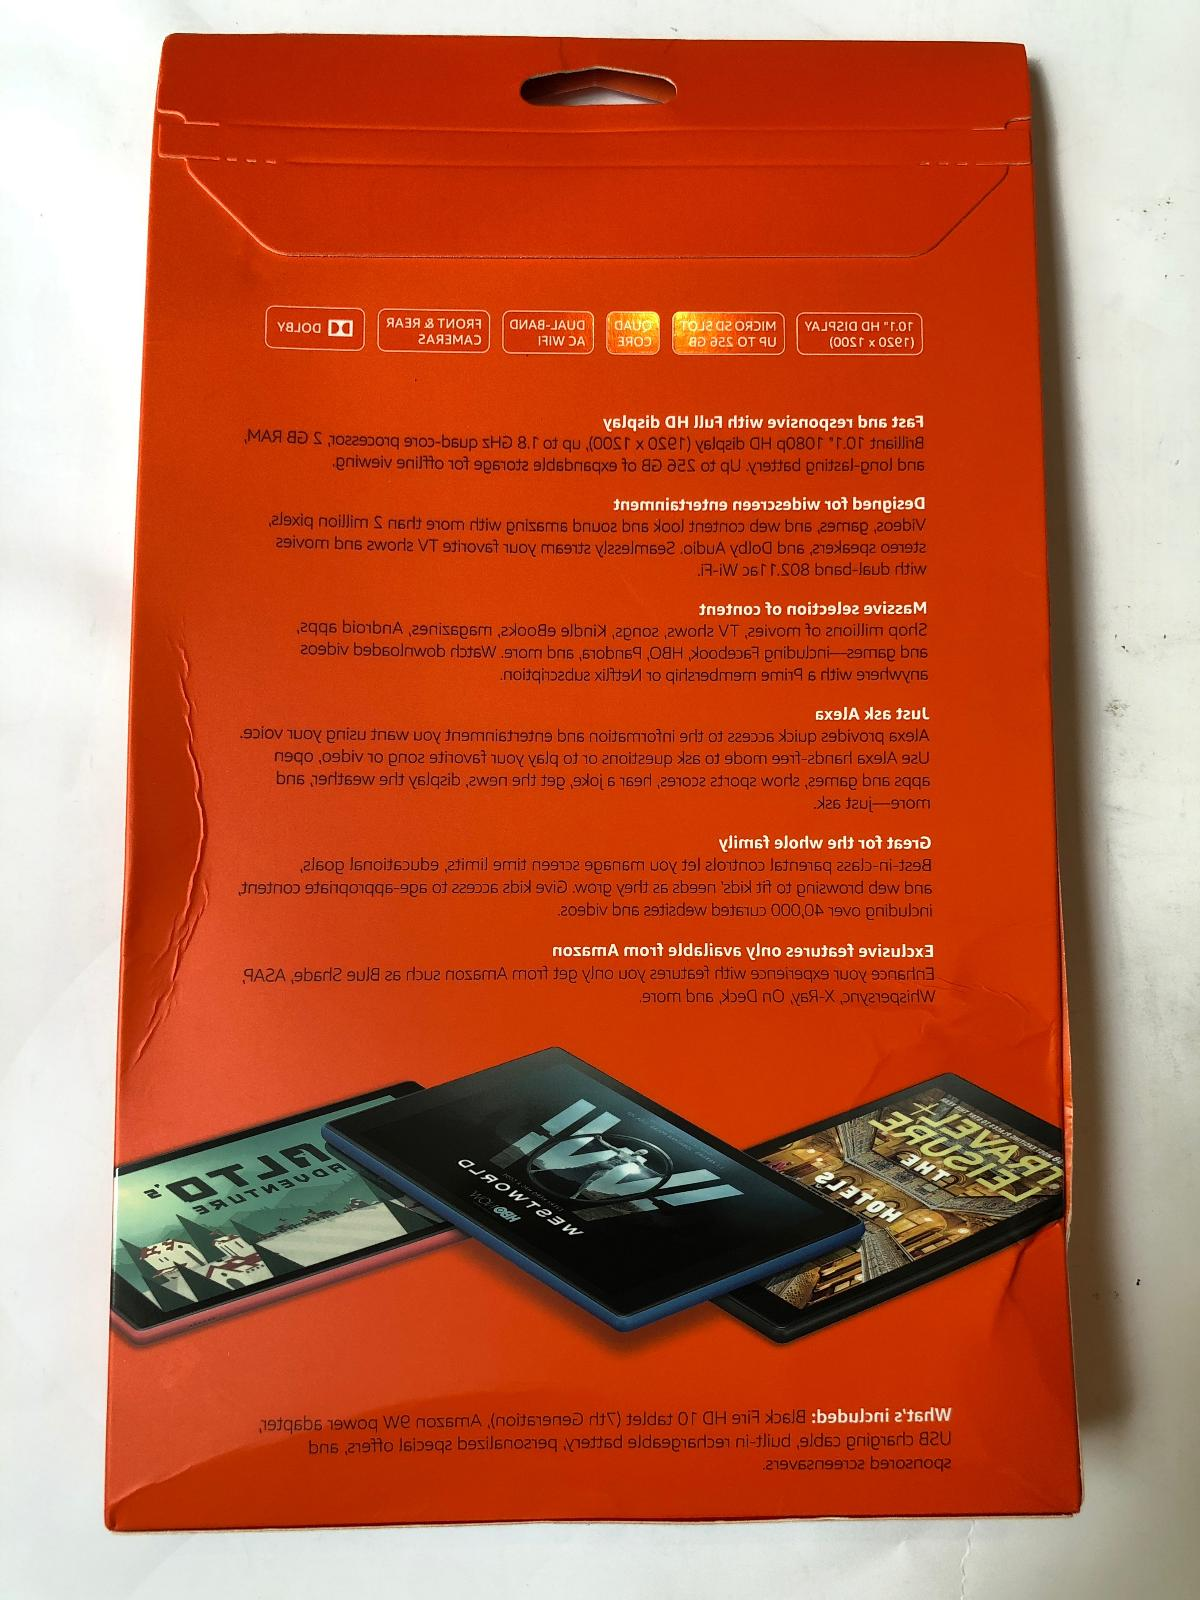 Amazon Fire HD 10 Tablet with 1080p, 32 GB, Generation